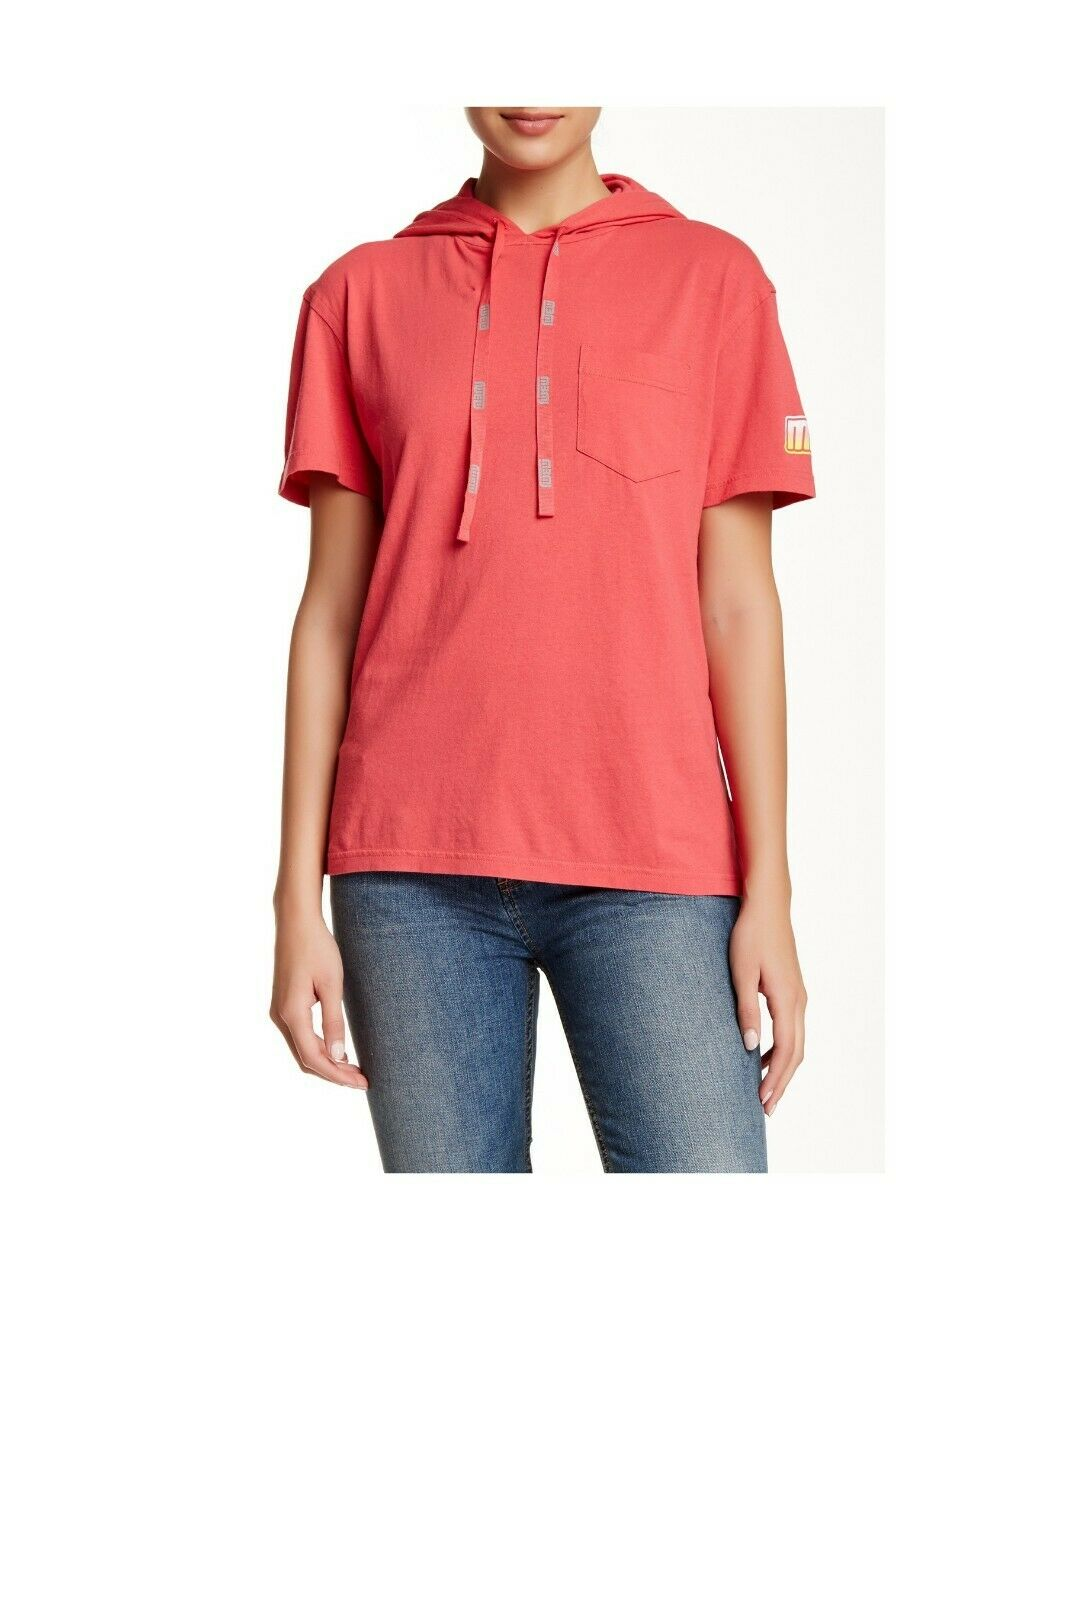 Marc Jacobs Hooded Sporty Tee DUSTY RED NWT SIze XS